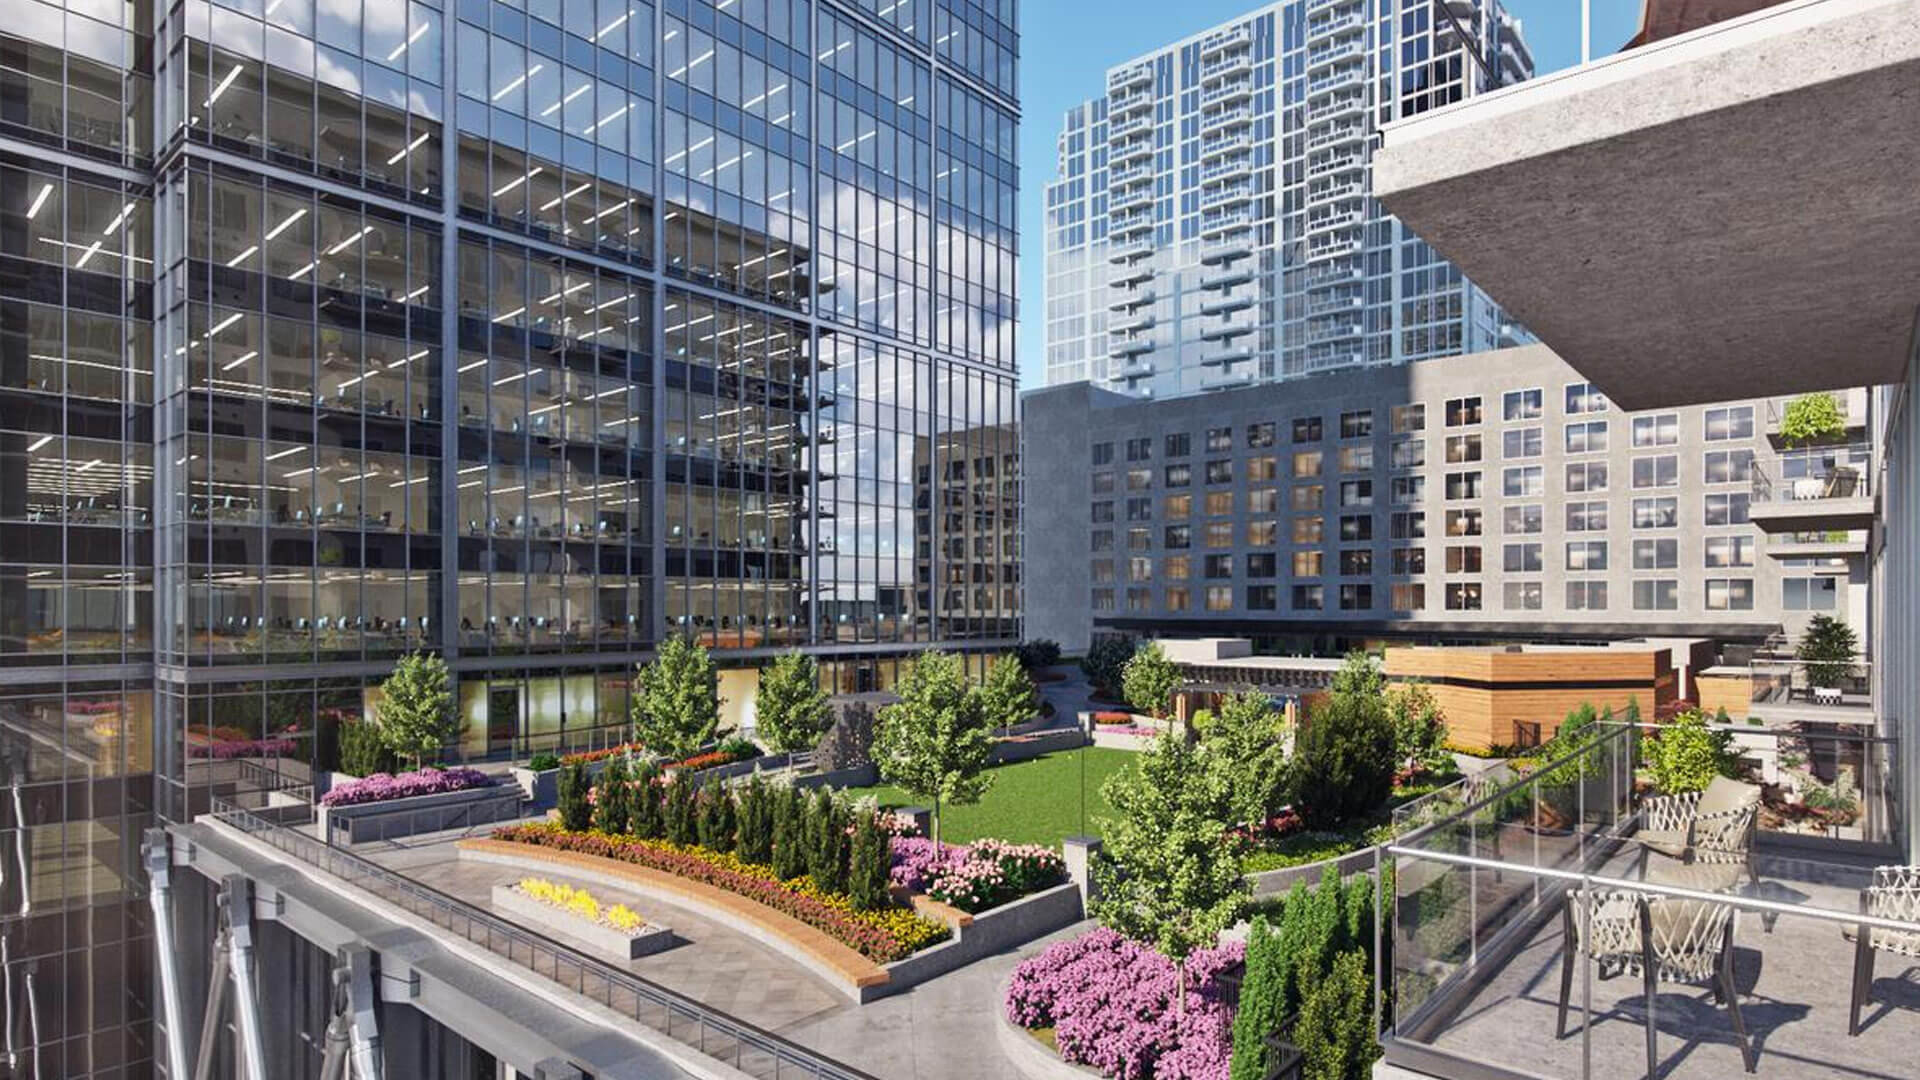 Financing deal coincides with launch of condo sales at 40 West 12th in Midtown